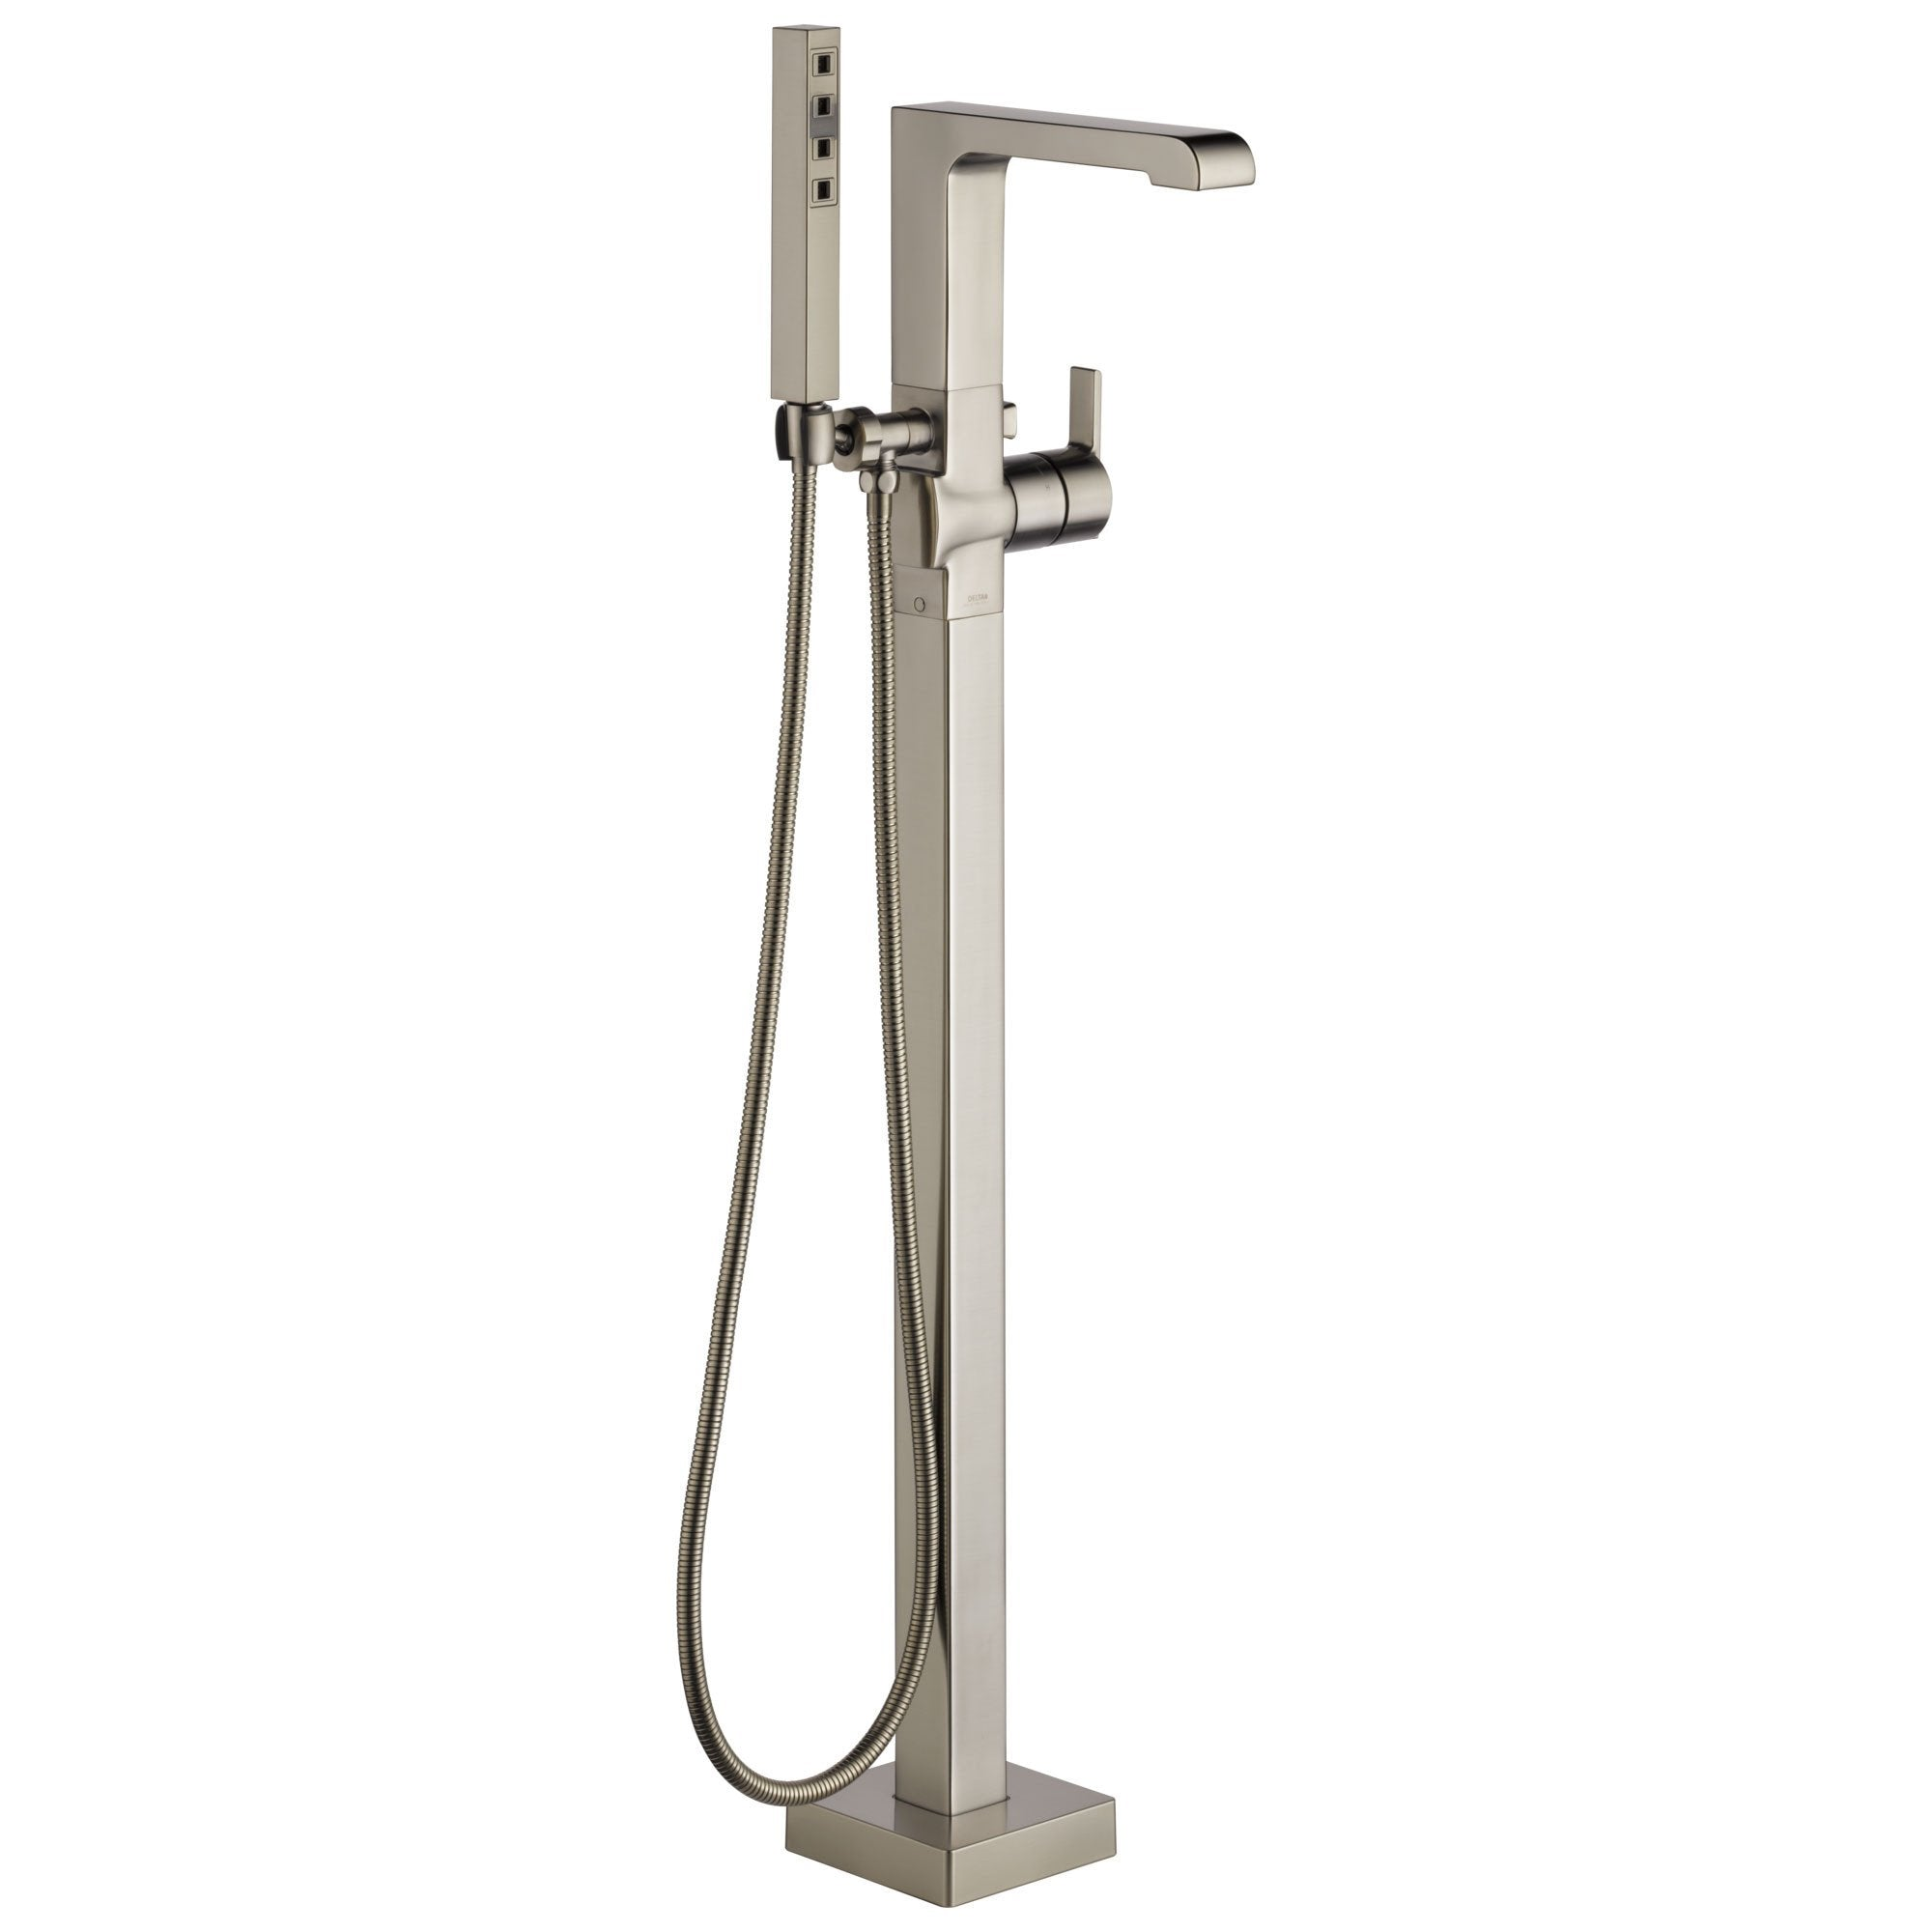 floors dxv modulus floor filler tub mount product faucet